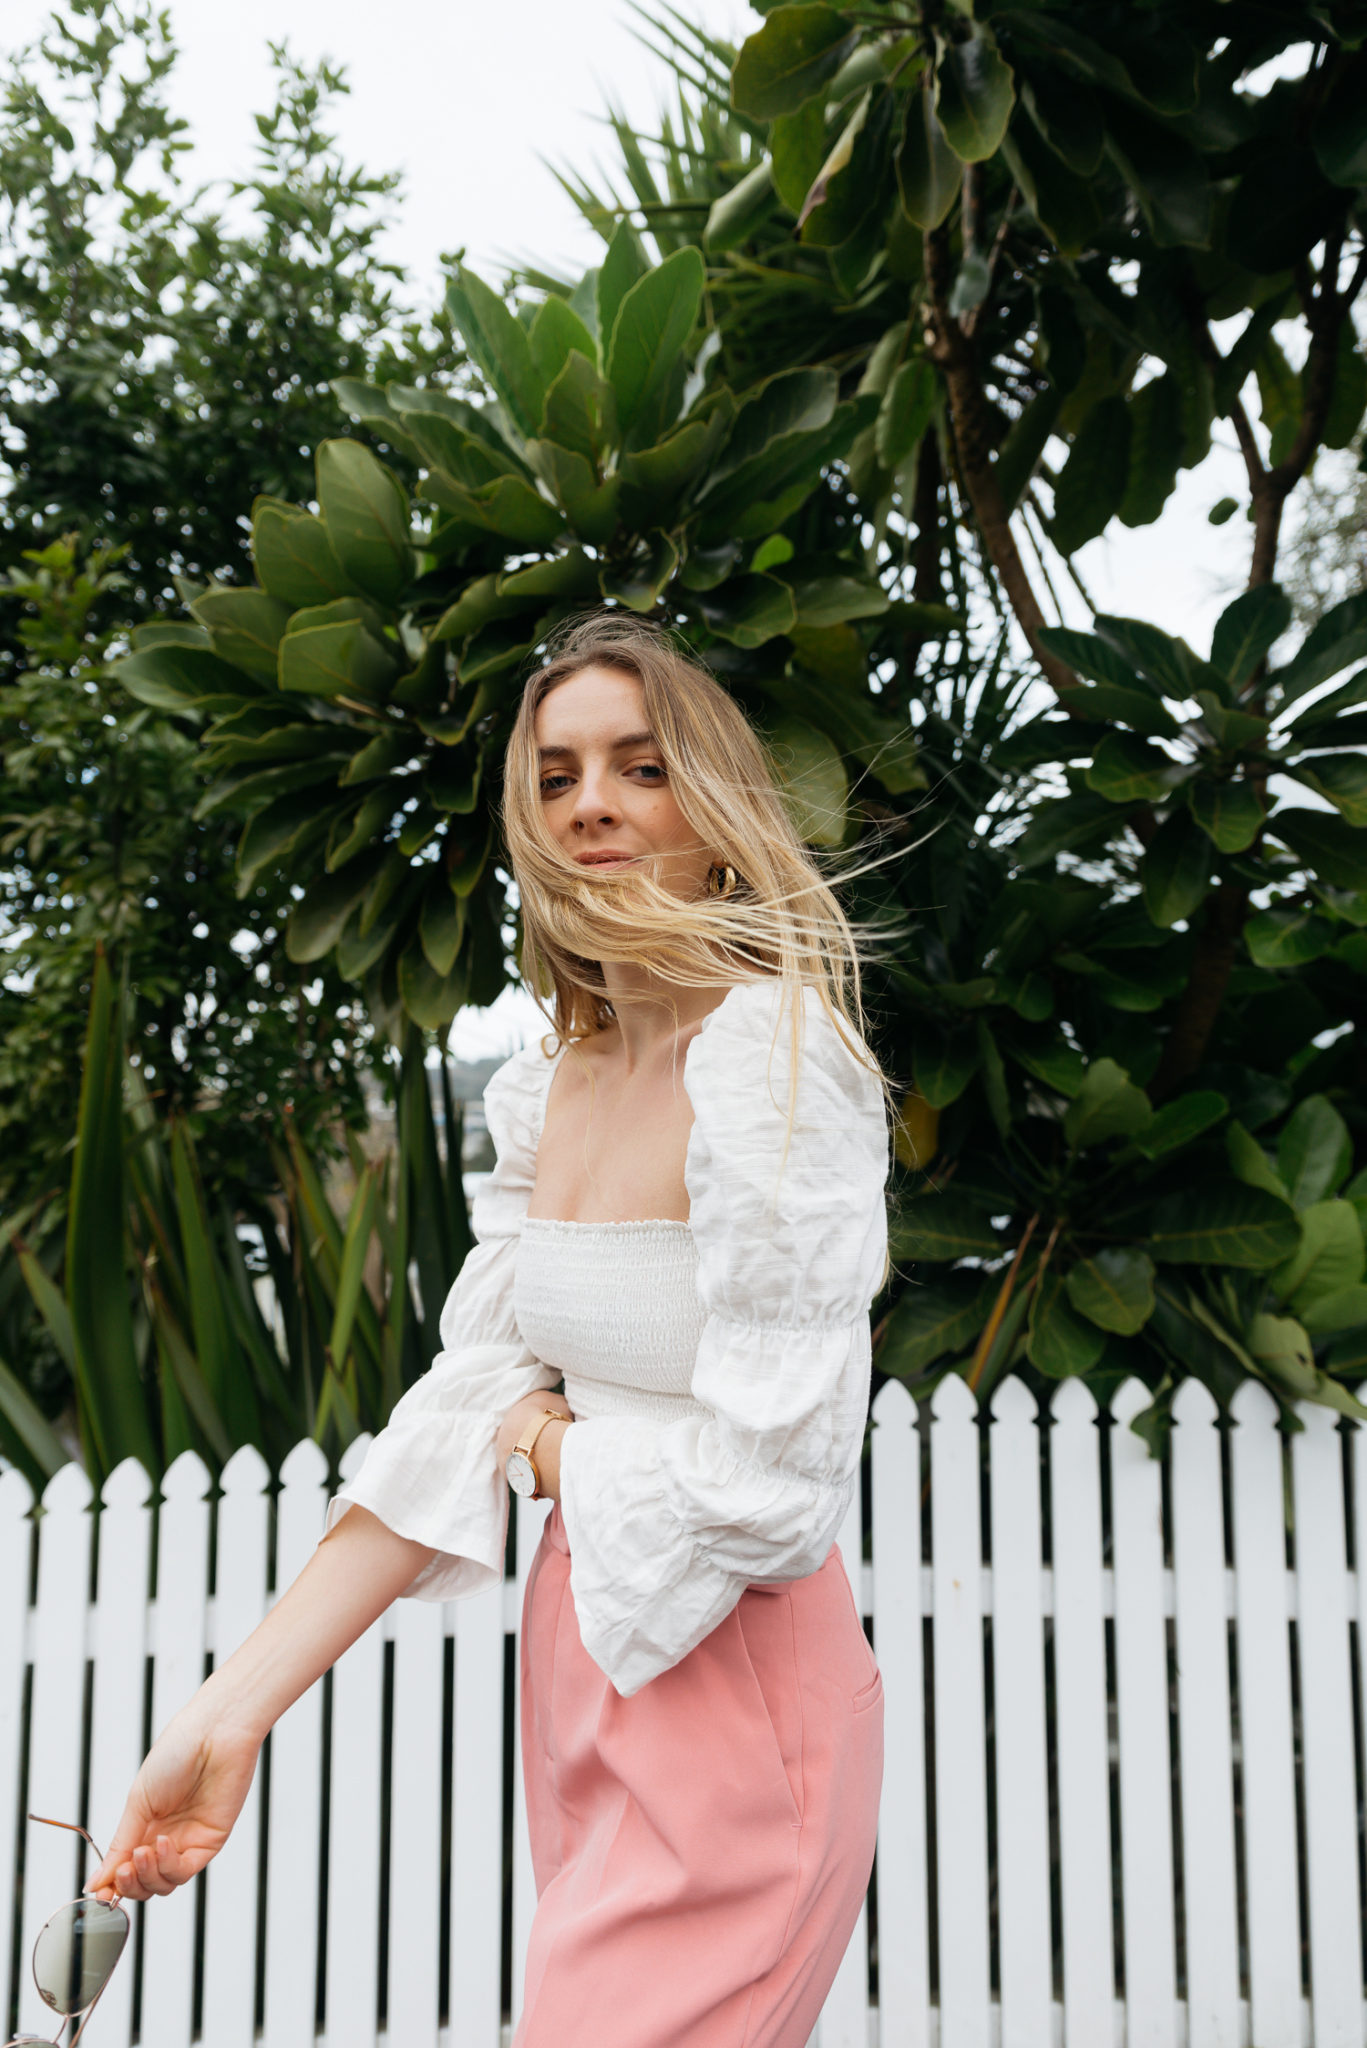 Reformation Maple Top, Zara Belted Trouser, Quay Desi Sunglasses, Sol Sana Parker | Stoleninspiration.com NZ Fashion & Travel Blogger